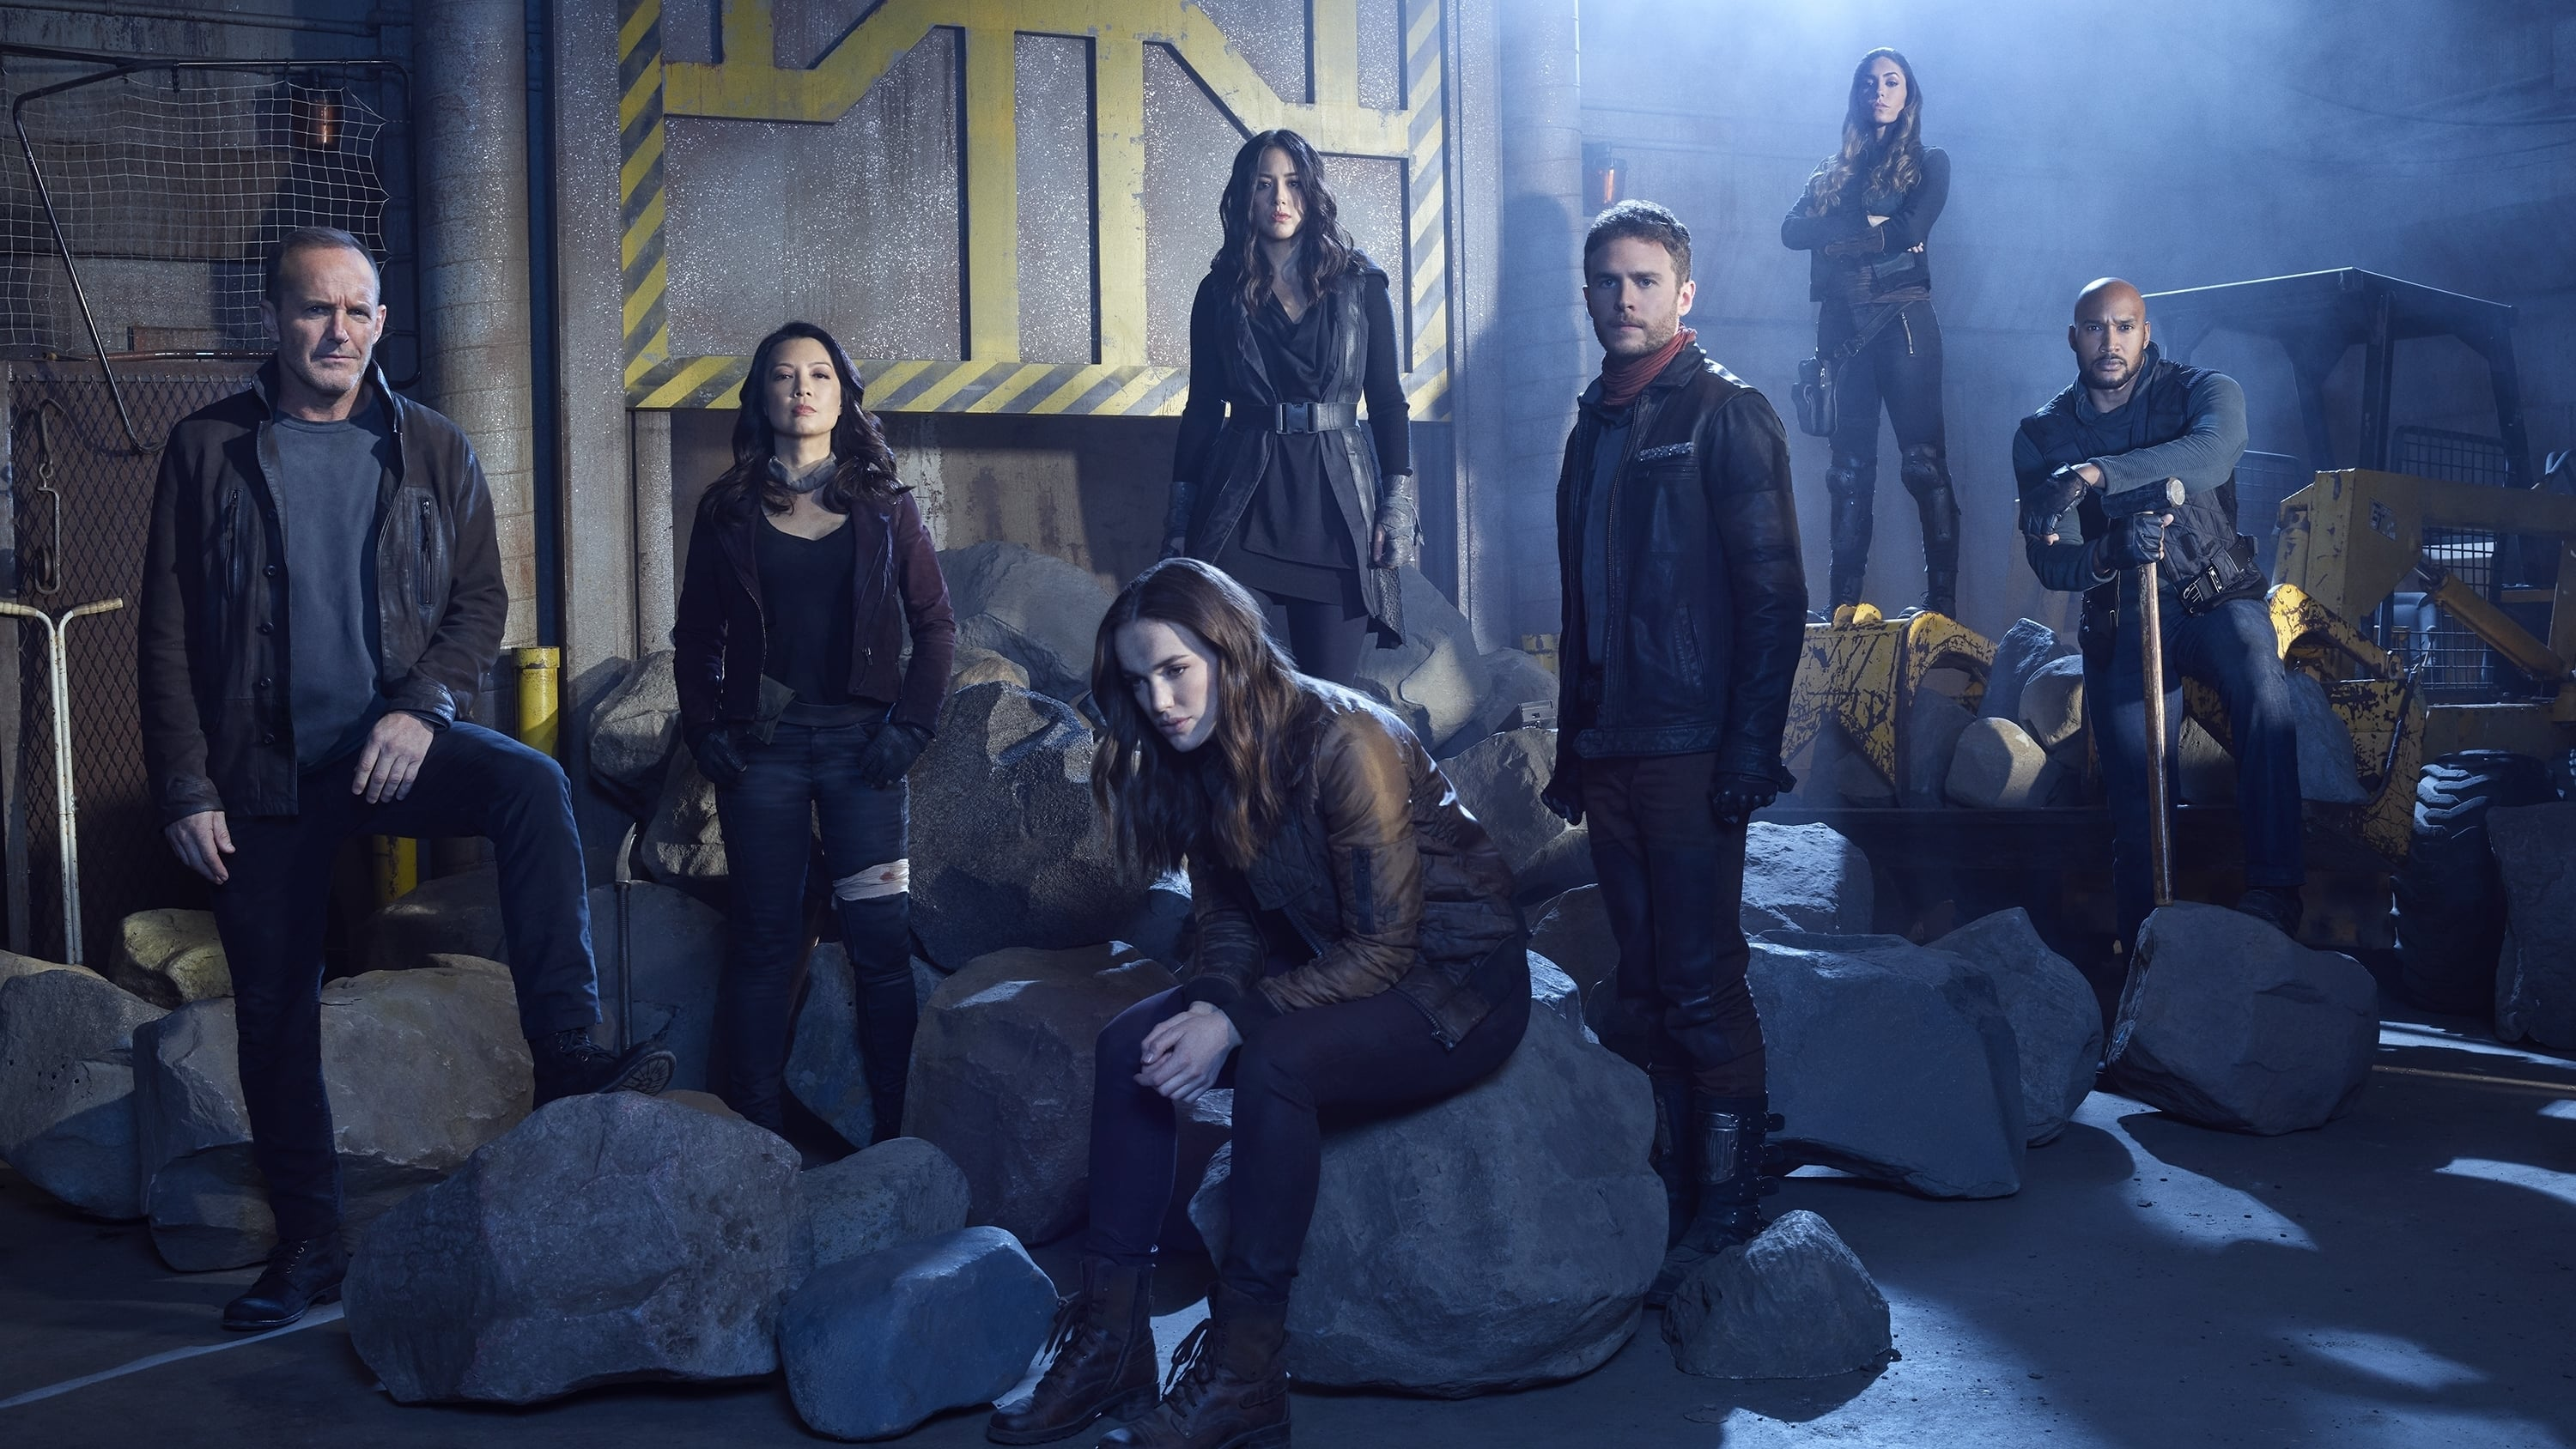 Marvel's Agents of S.H.I.E.L.D.: Season 6 Episode 8